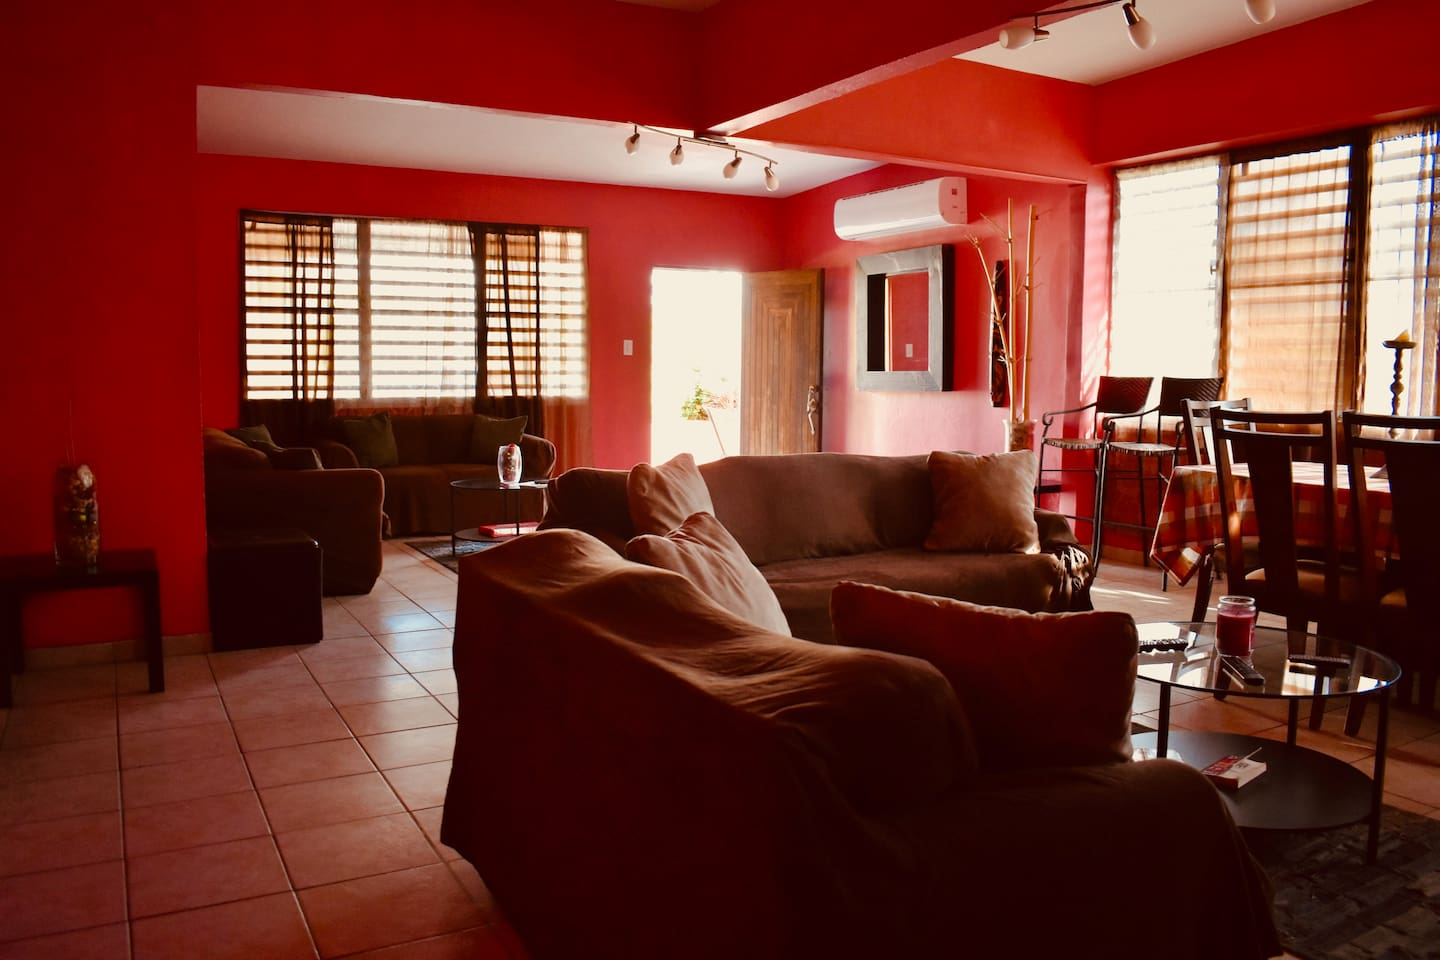 Huge living room: 2 sofas, 2 love seats, stools, TV, cable TV, kitchen table with 6 chairs, air conditioning, ottoman, tables